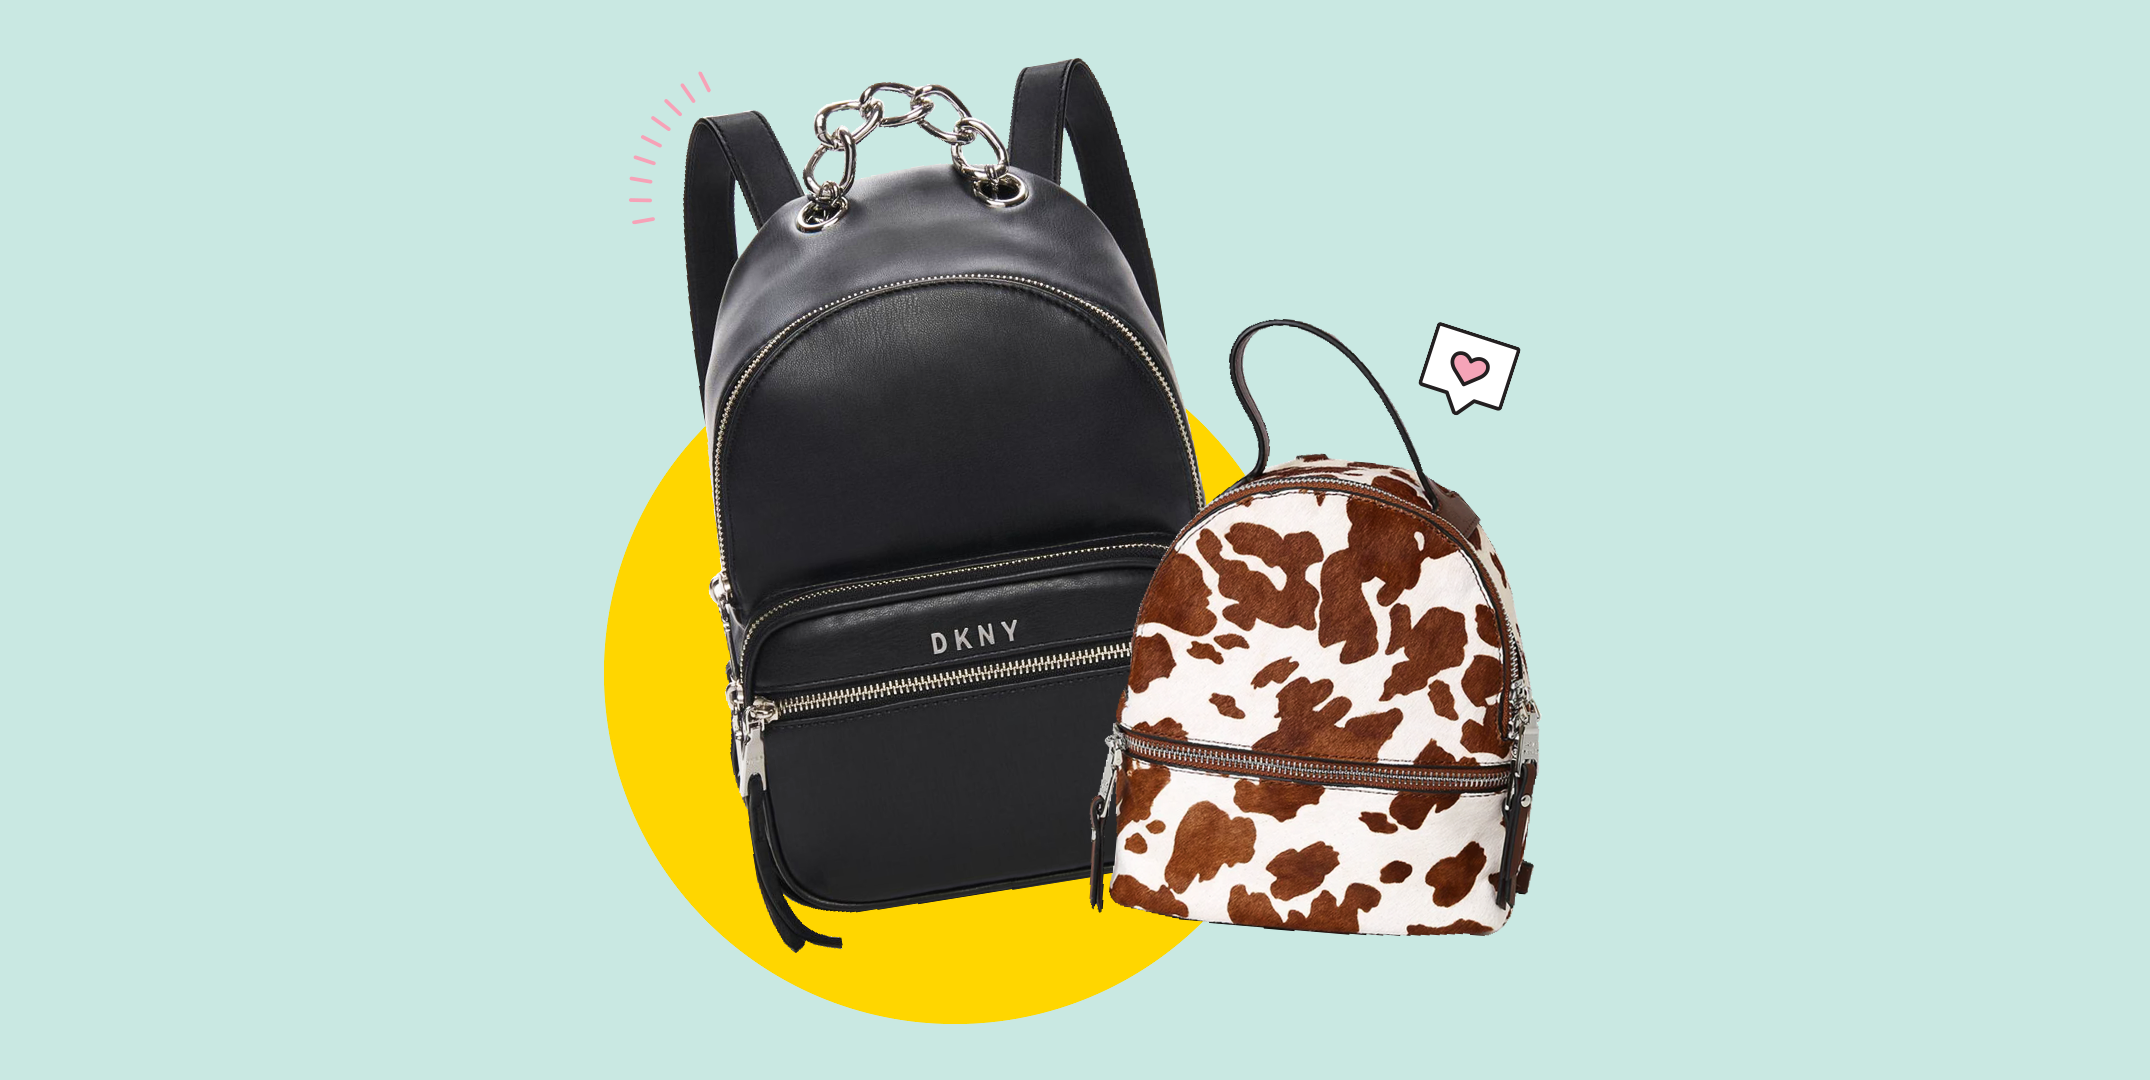 25 Mini Backpacks That Are So Cute and Small, You'll Just Wanna Eat 'Em Up